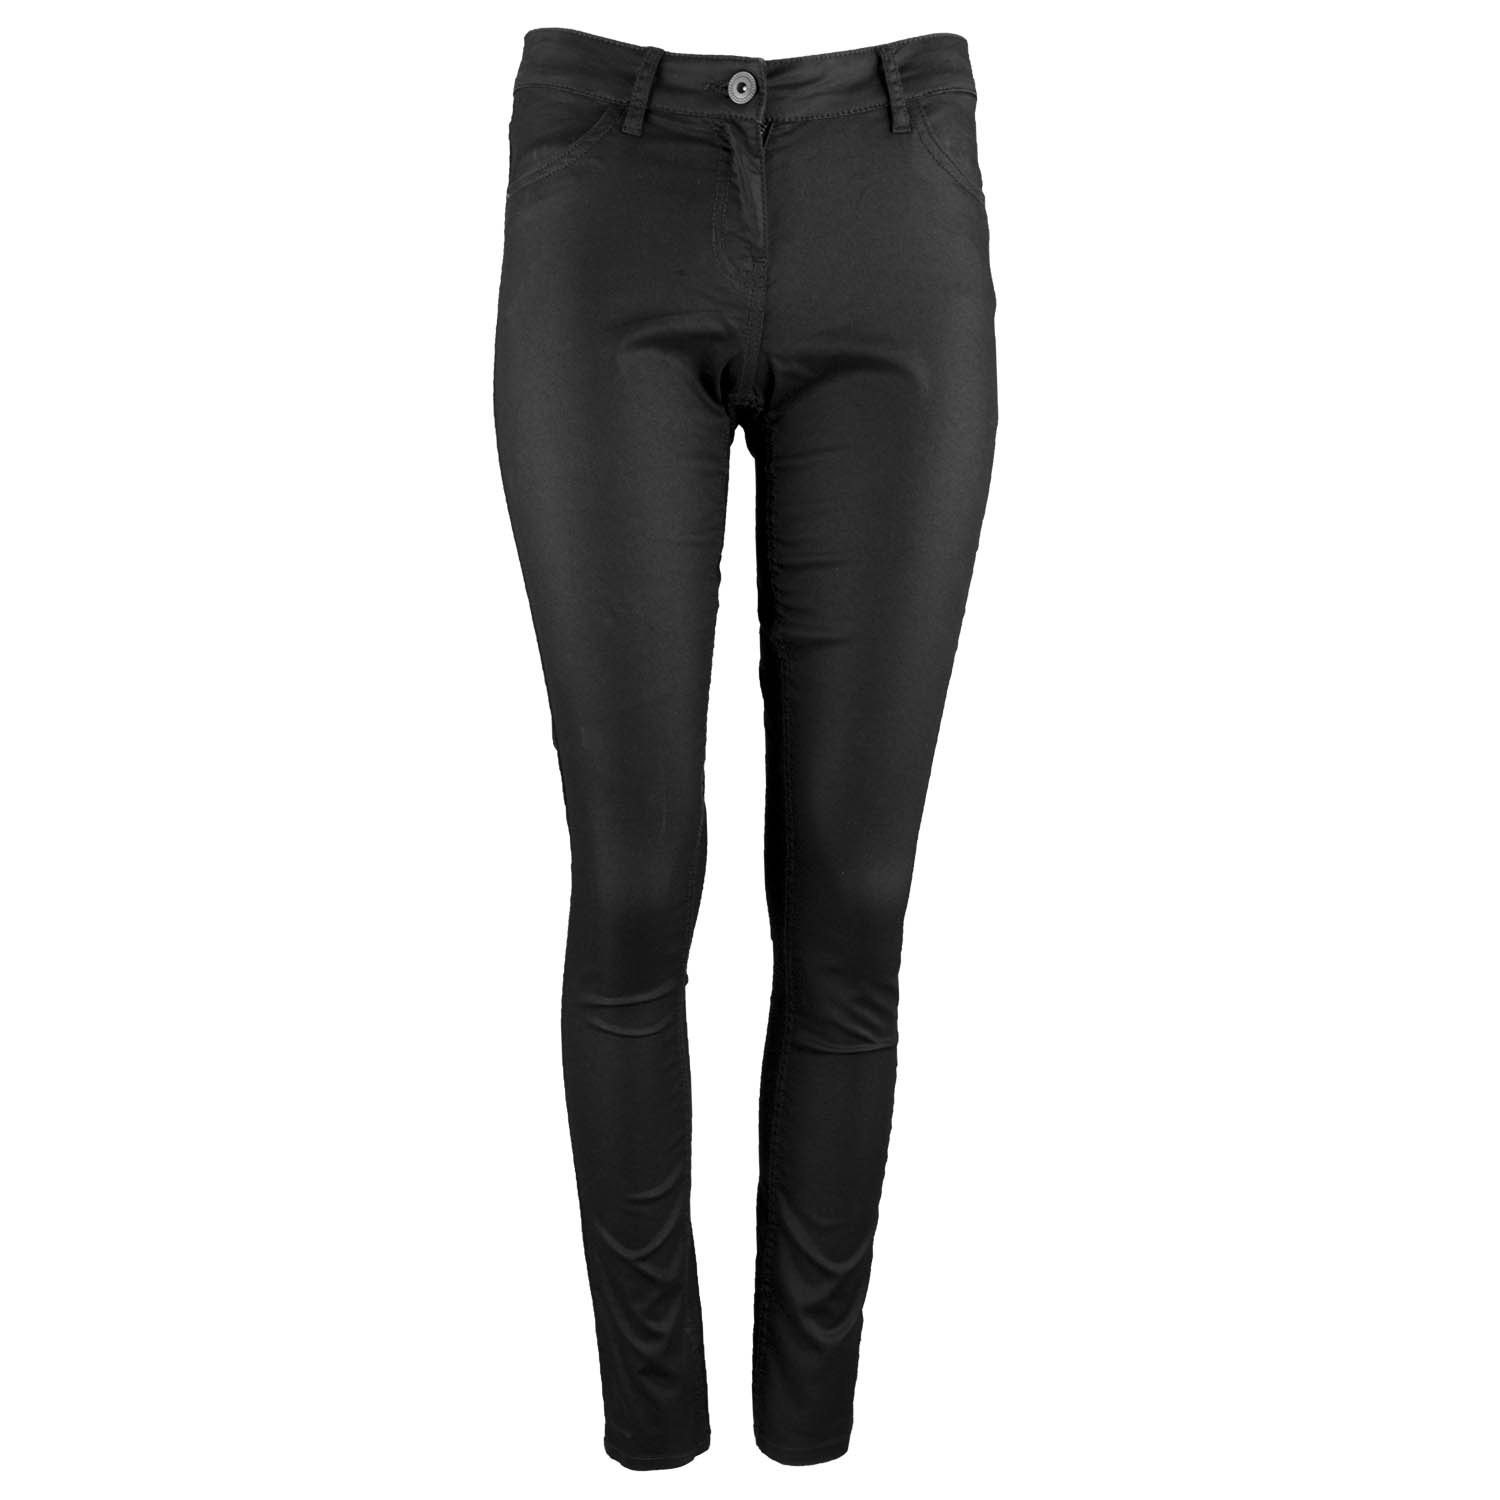 Damen Stretchhose in Schwarz